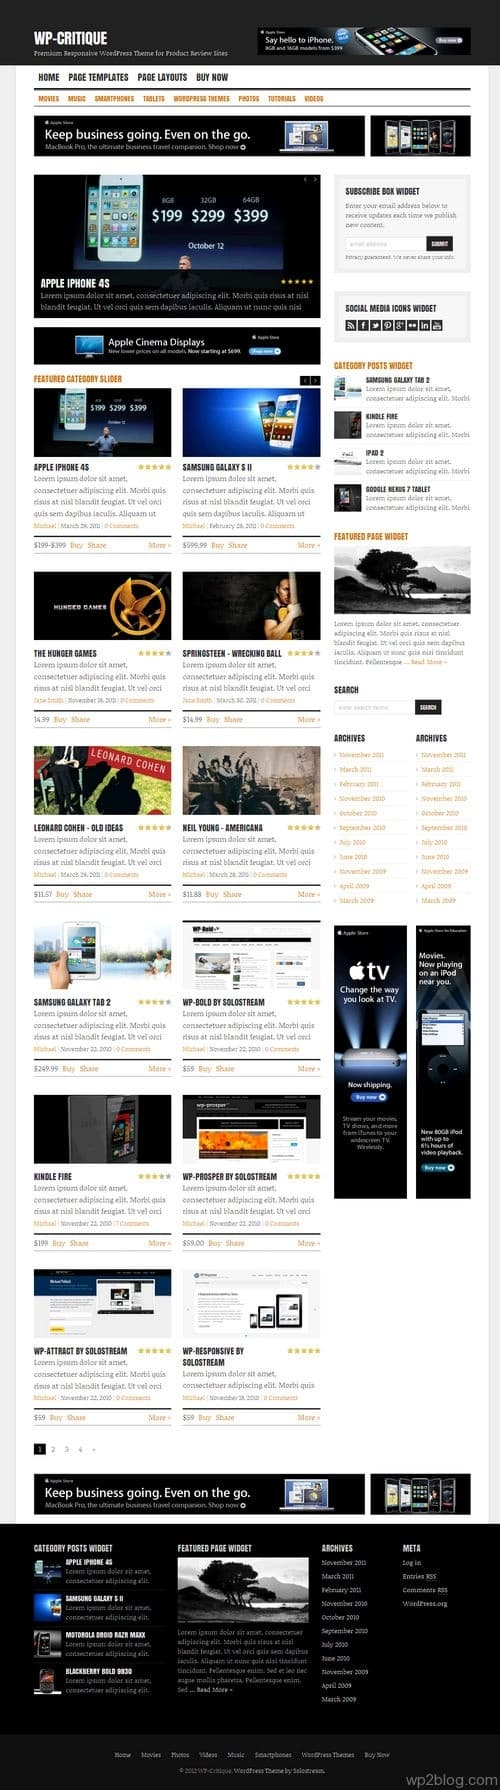 WP-Critique WordPress Theme